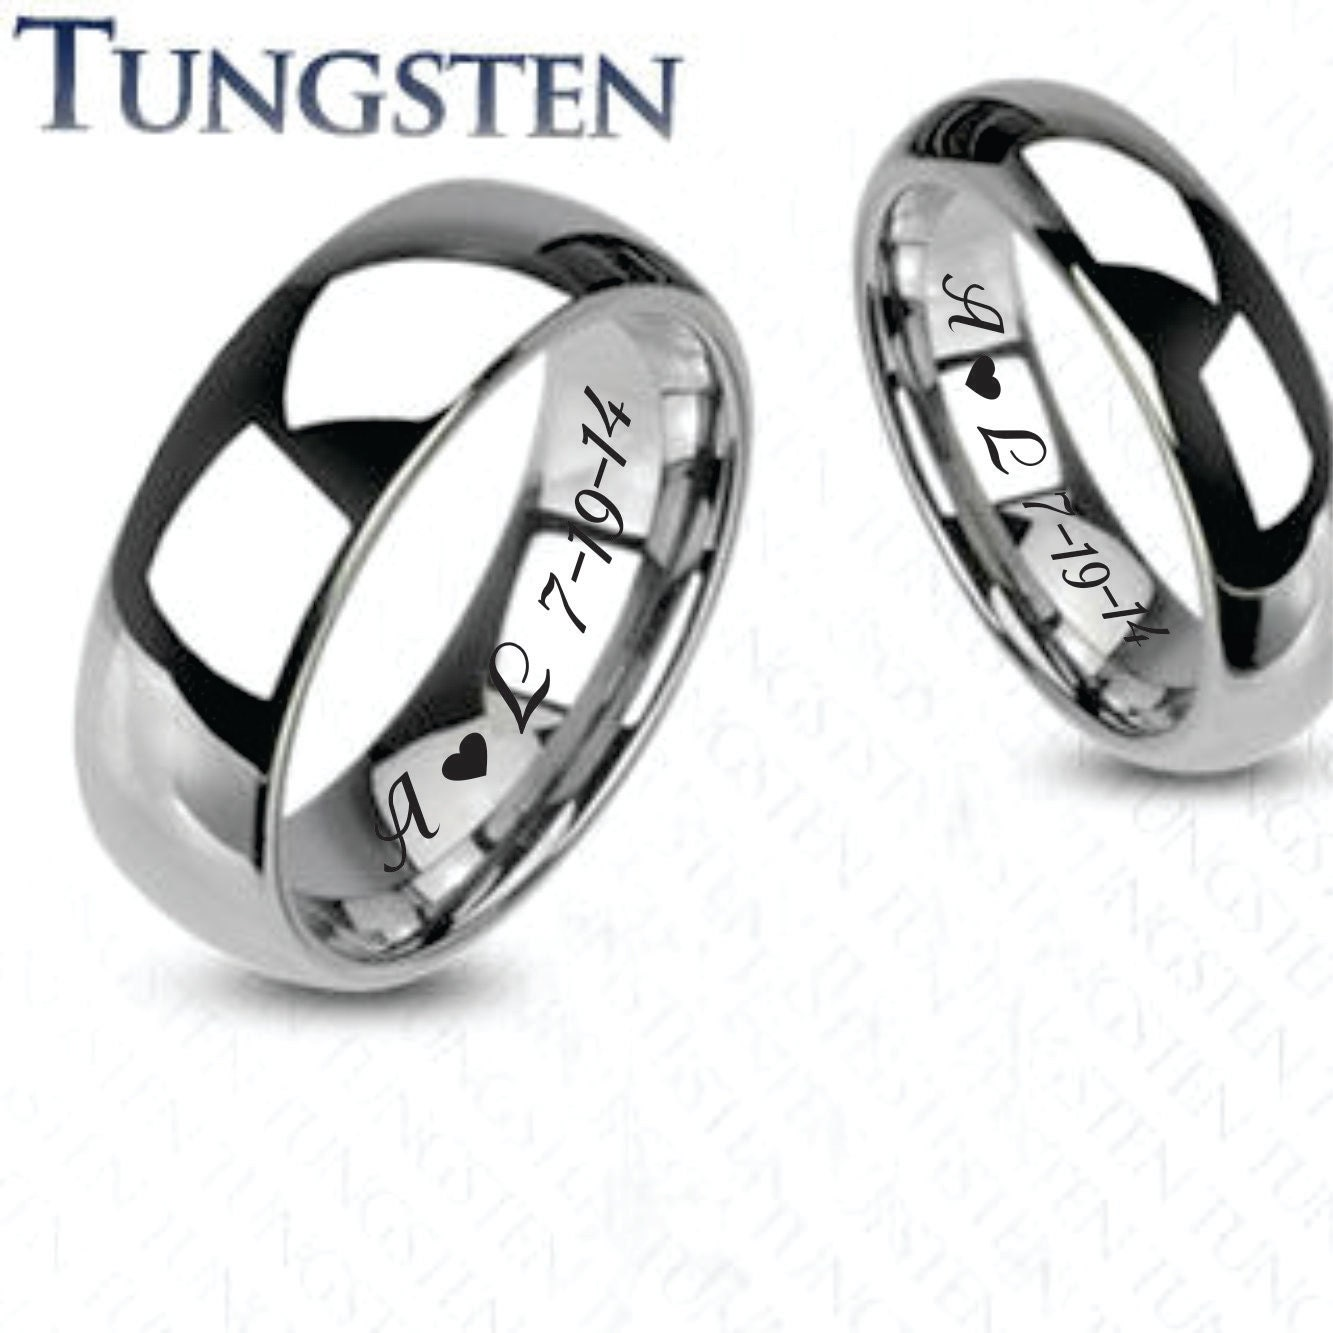 engraved rings promise rings personalized wedding bands. Black Bedroom Furniture Sets. Home Design Ideas